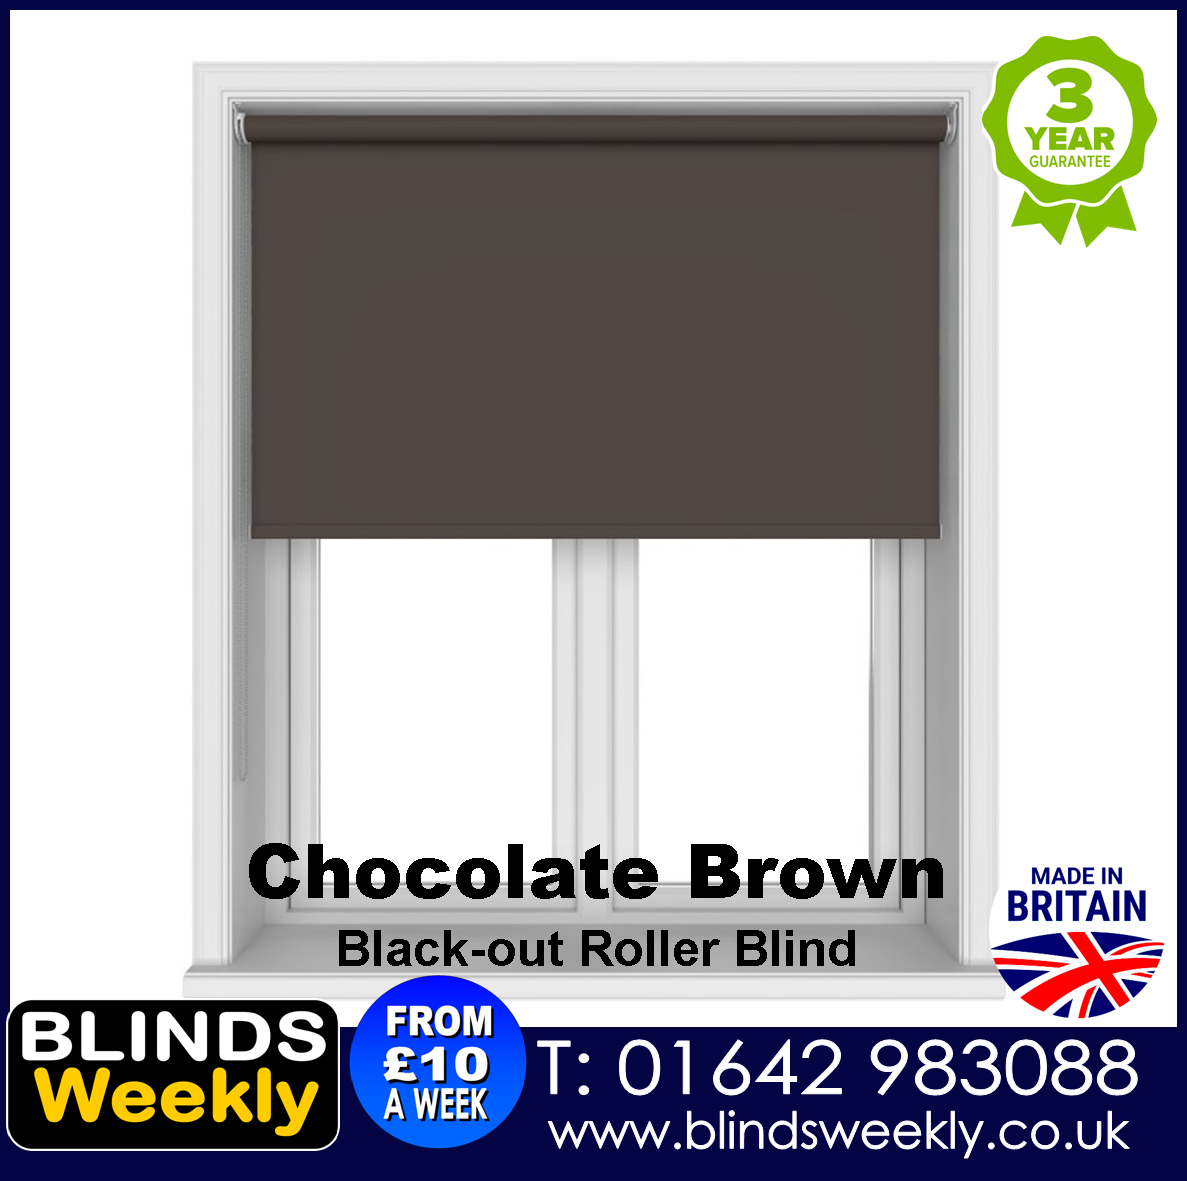 Blinds Weekly Blackout Roller Blind - CHOCOLATE BROWN